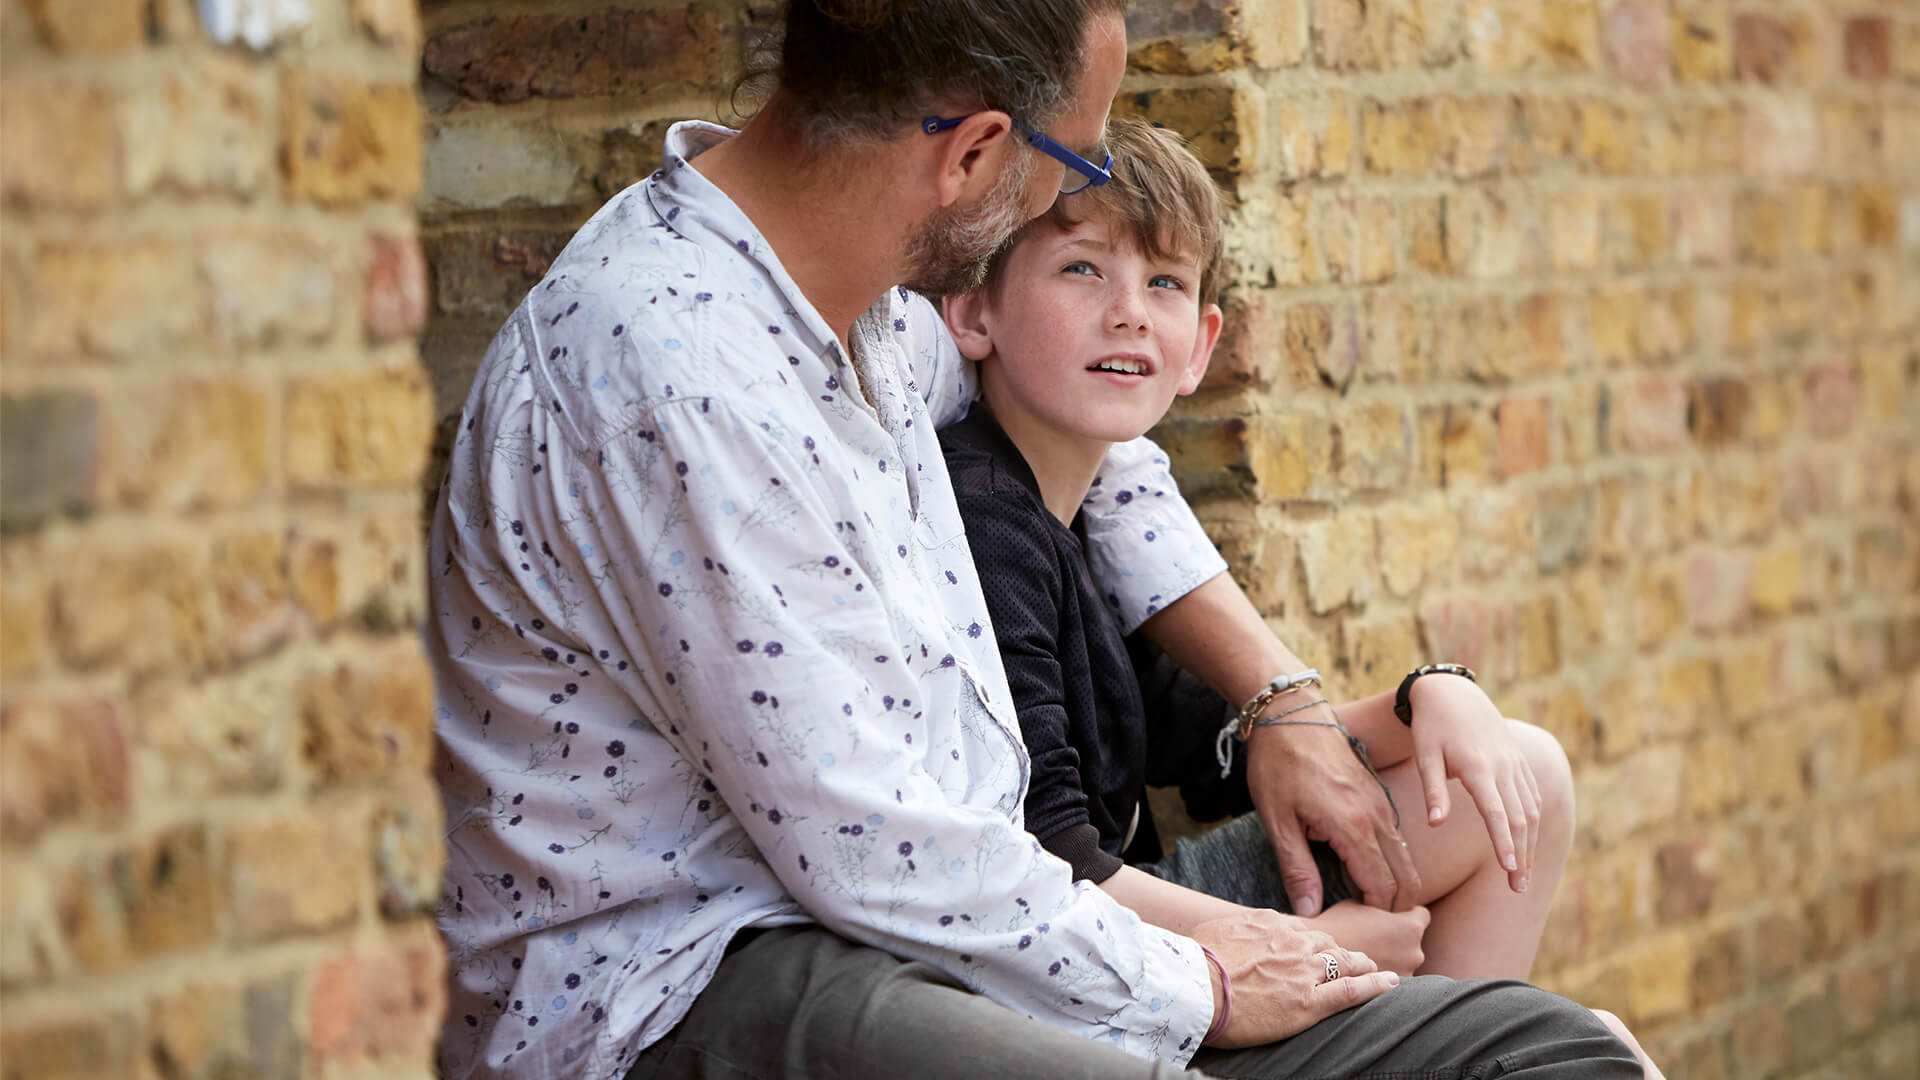 Parents Mental Health Support | Advice for Your Child | YoungMinds